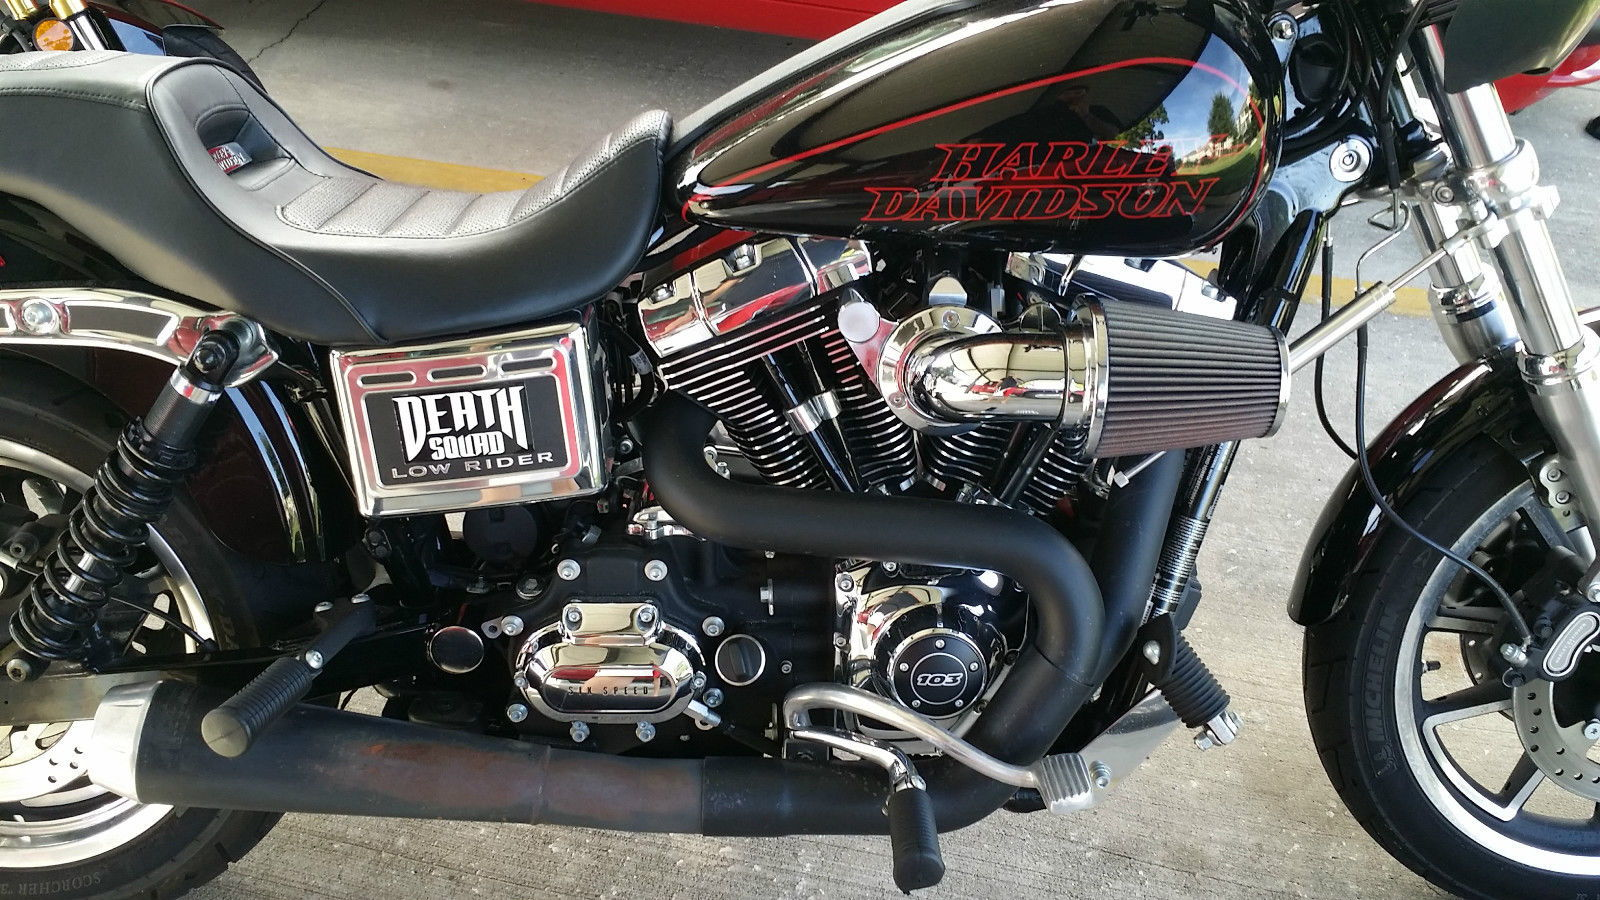 Steve The Russian New 2014 Dyna Low Rider Fxdl Build